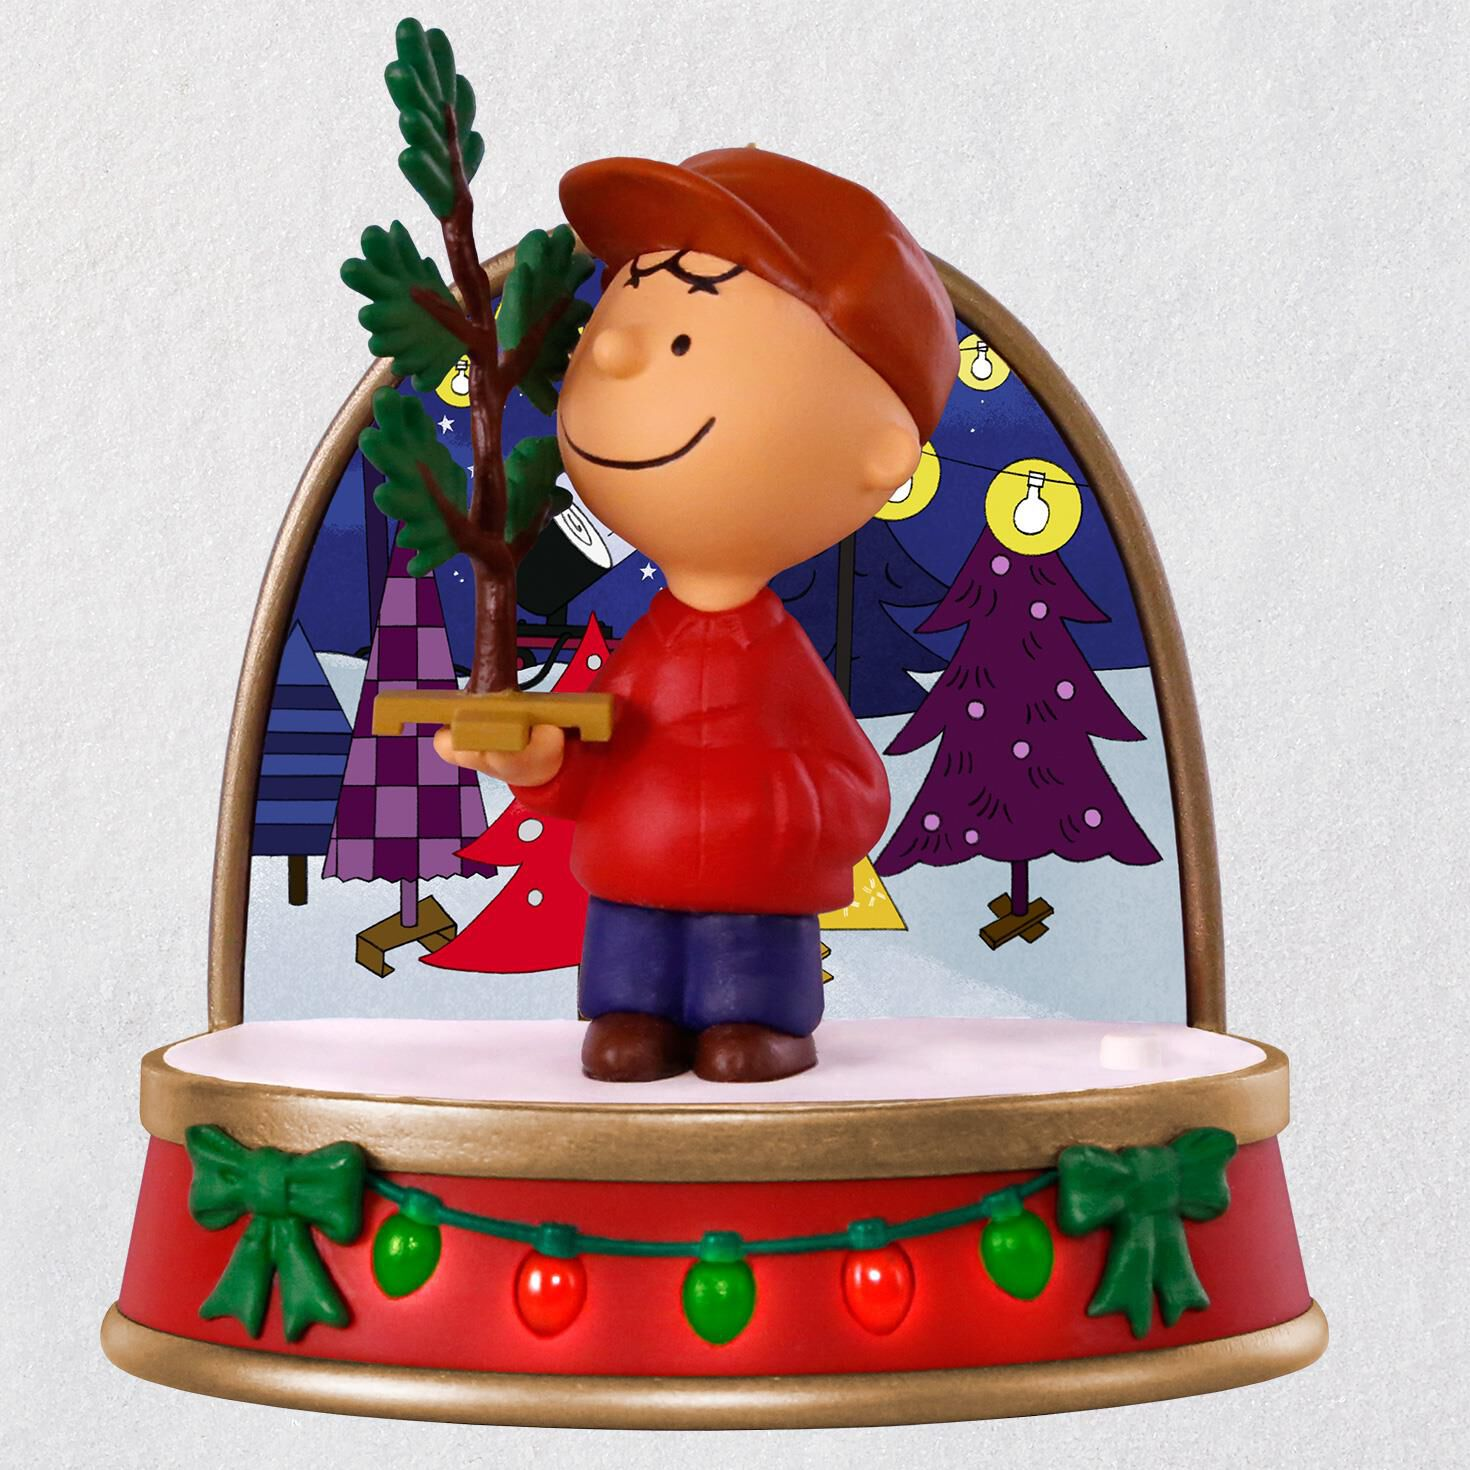 A Charlie Brown Christmas Charlie Brown Ornament With Sound and Light